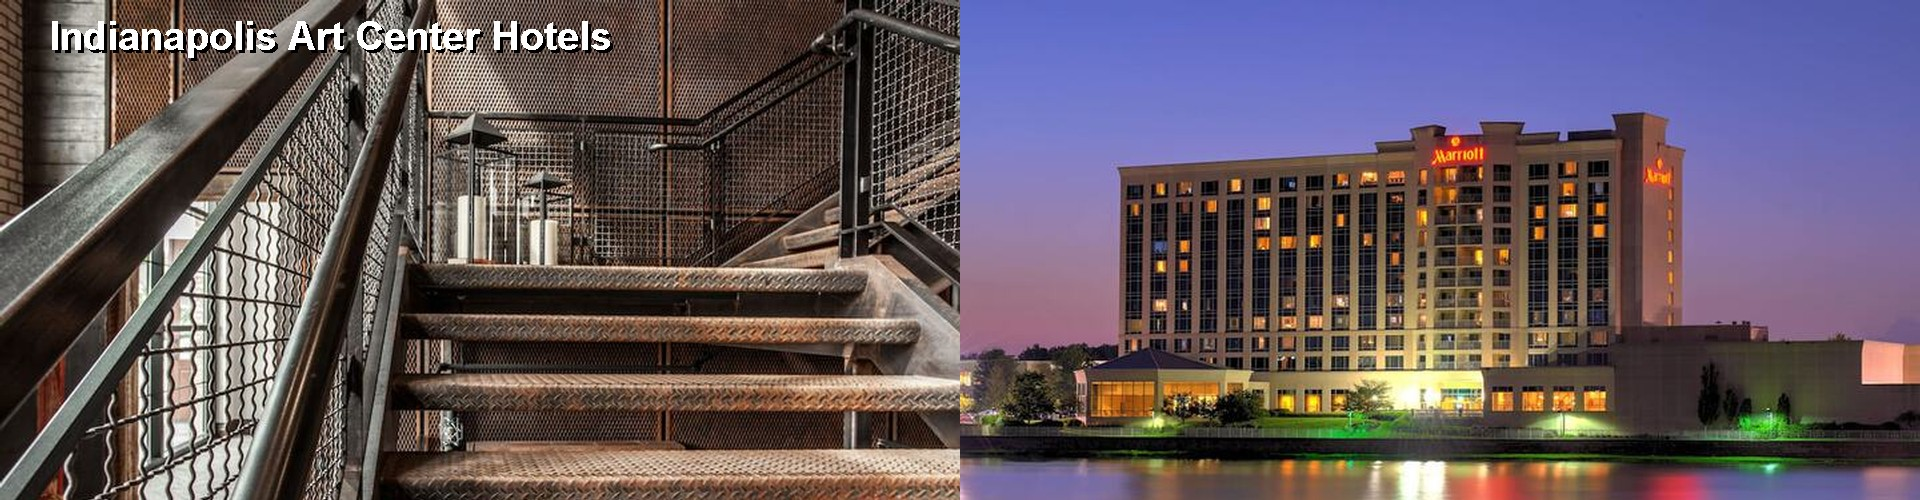 5 Best Hotels near Indianapolis Art Center